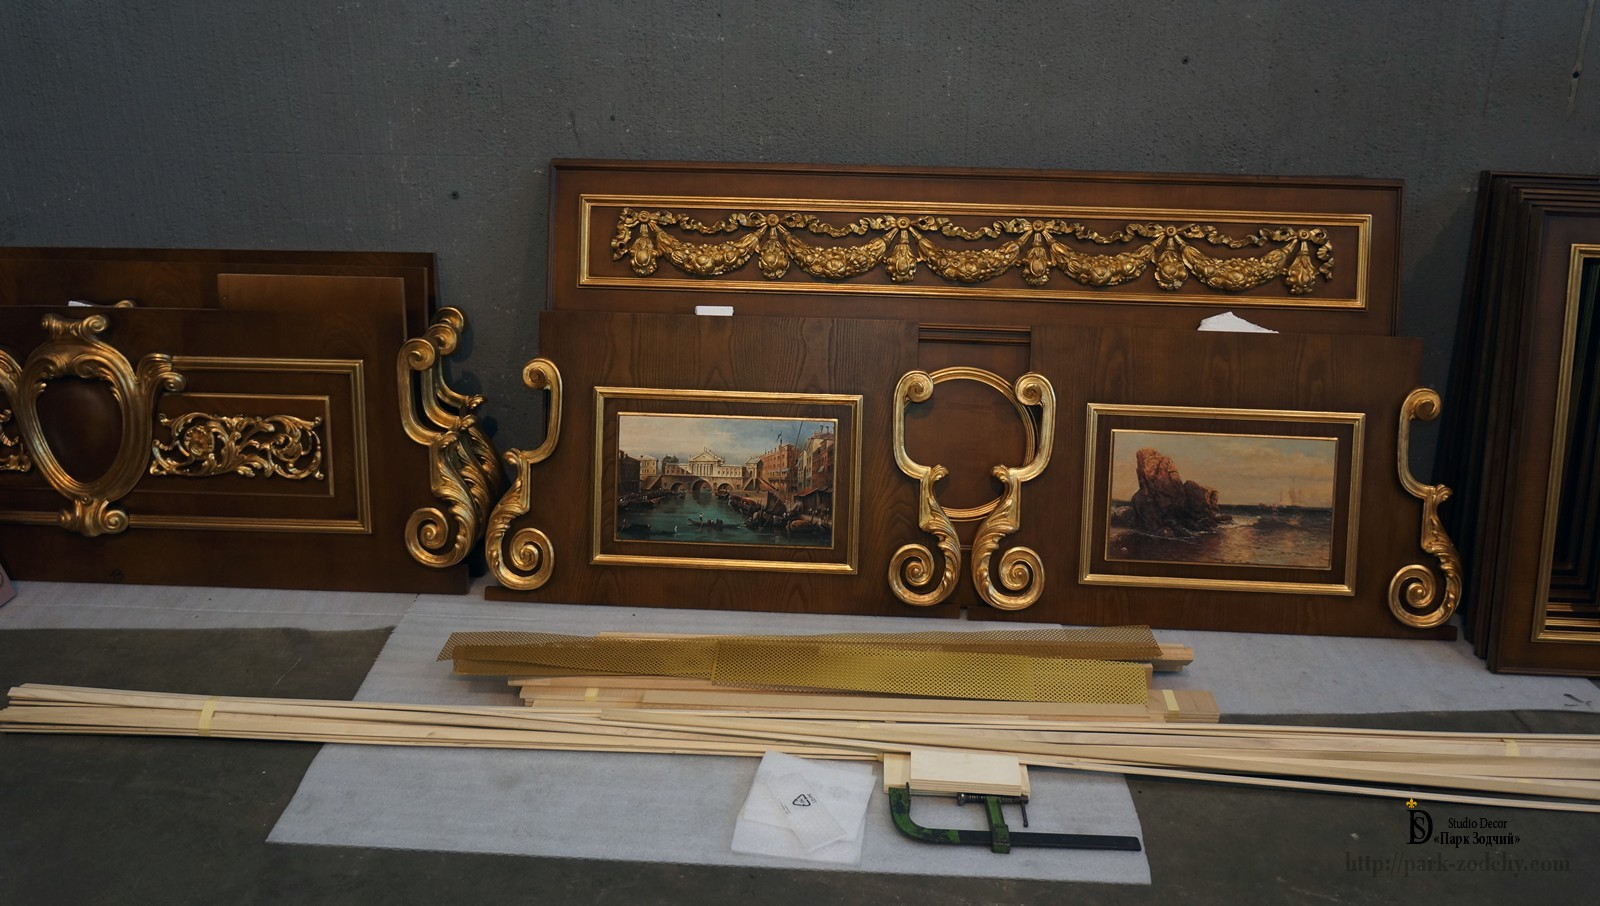 The overdoor with gilding and pictorial inserts